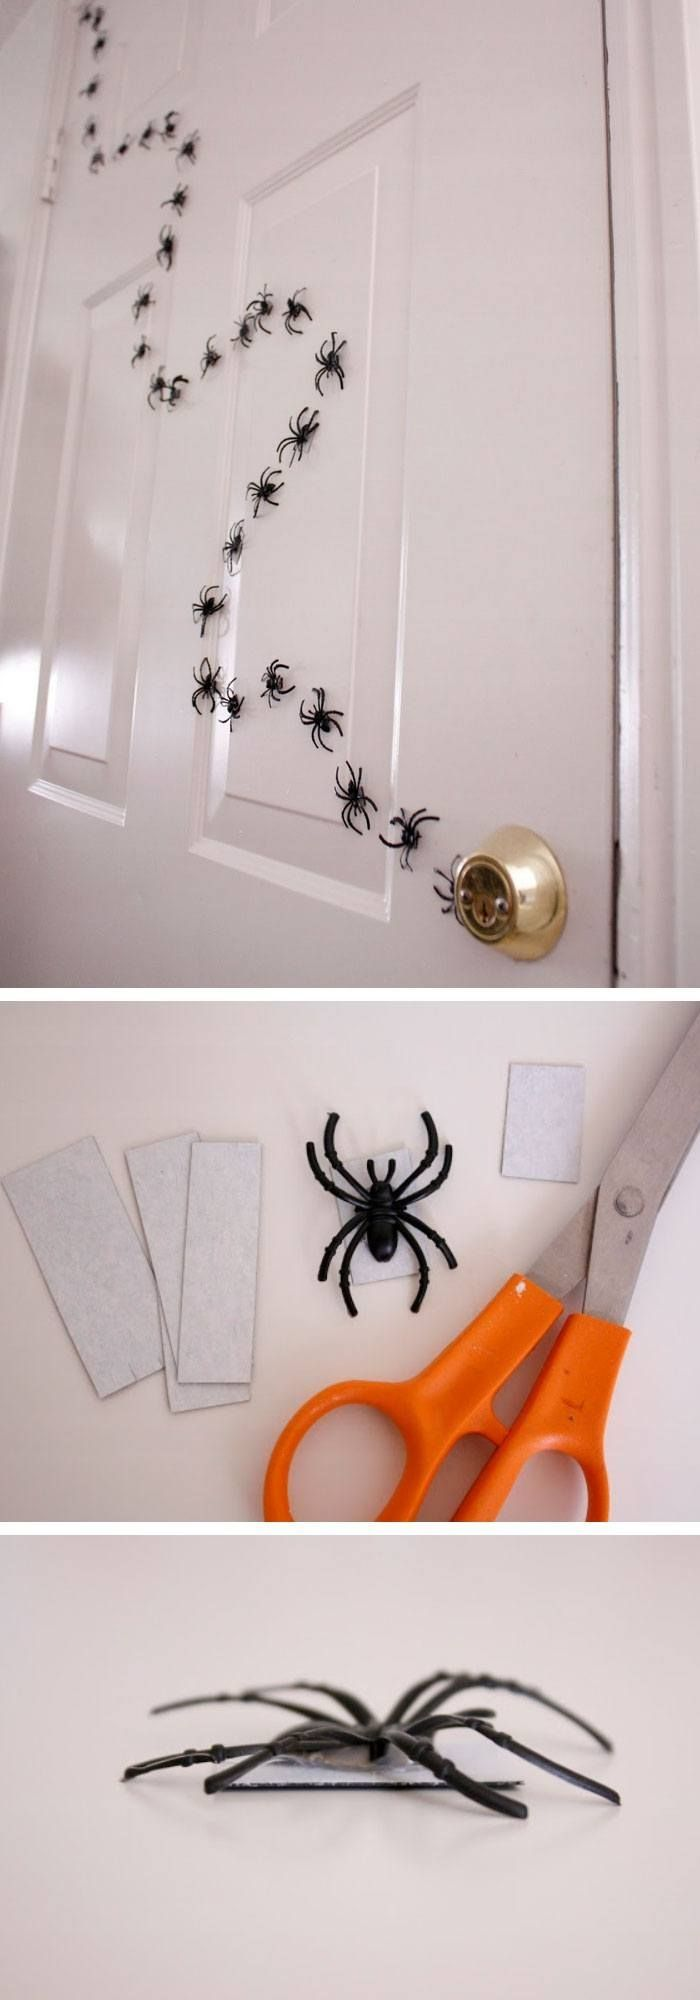 101 Spooky Indoor  Outdoor Halloween Decoration Ideas Pinterest - Diy Indoor Halloween Decorations